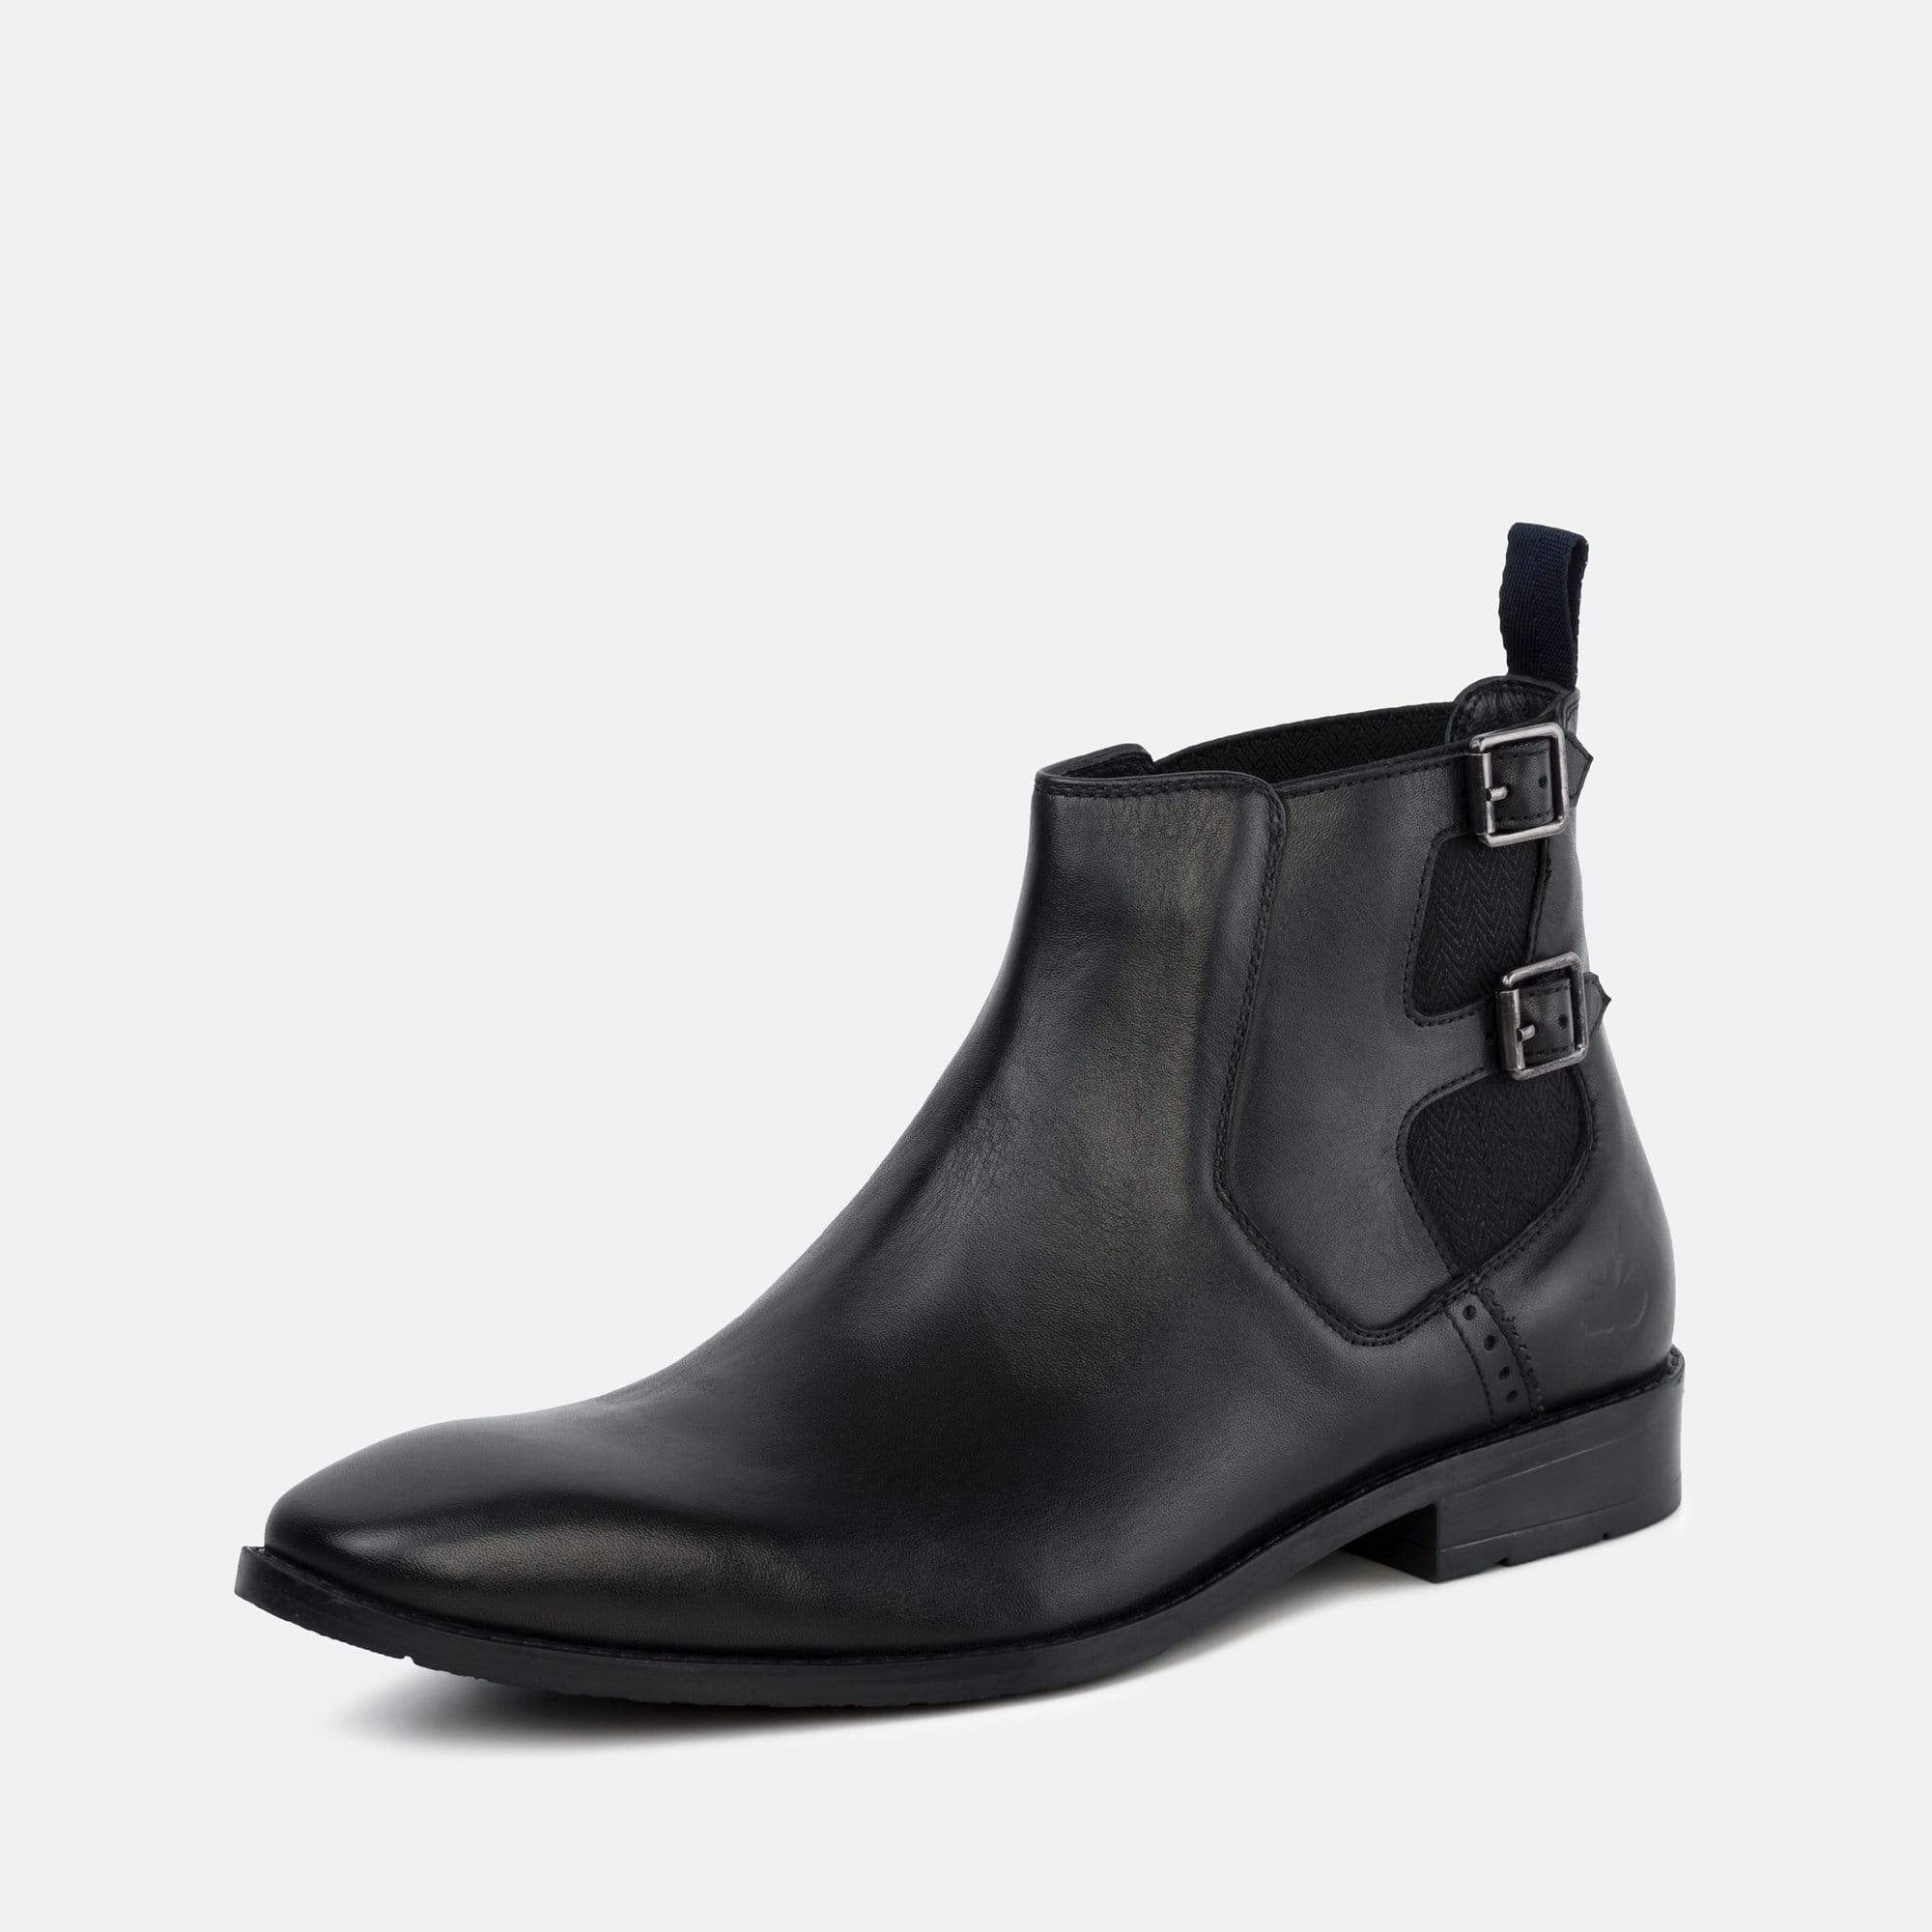 Goodwin Smith Footwear Morgan Black Leather Chelsea Boot